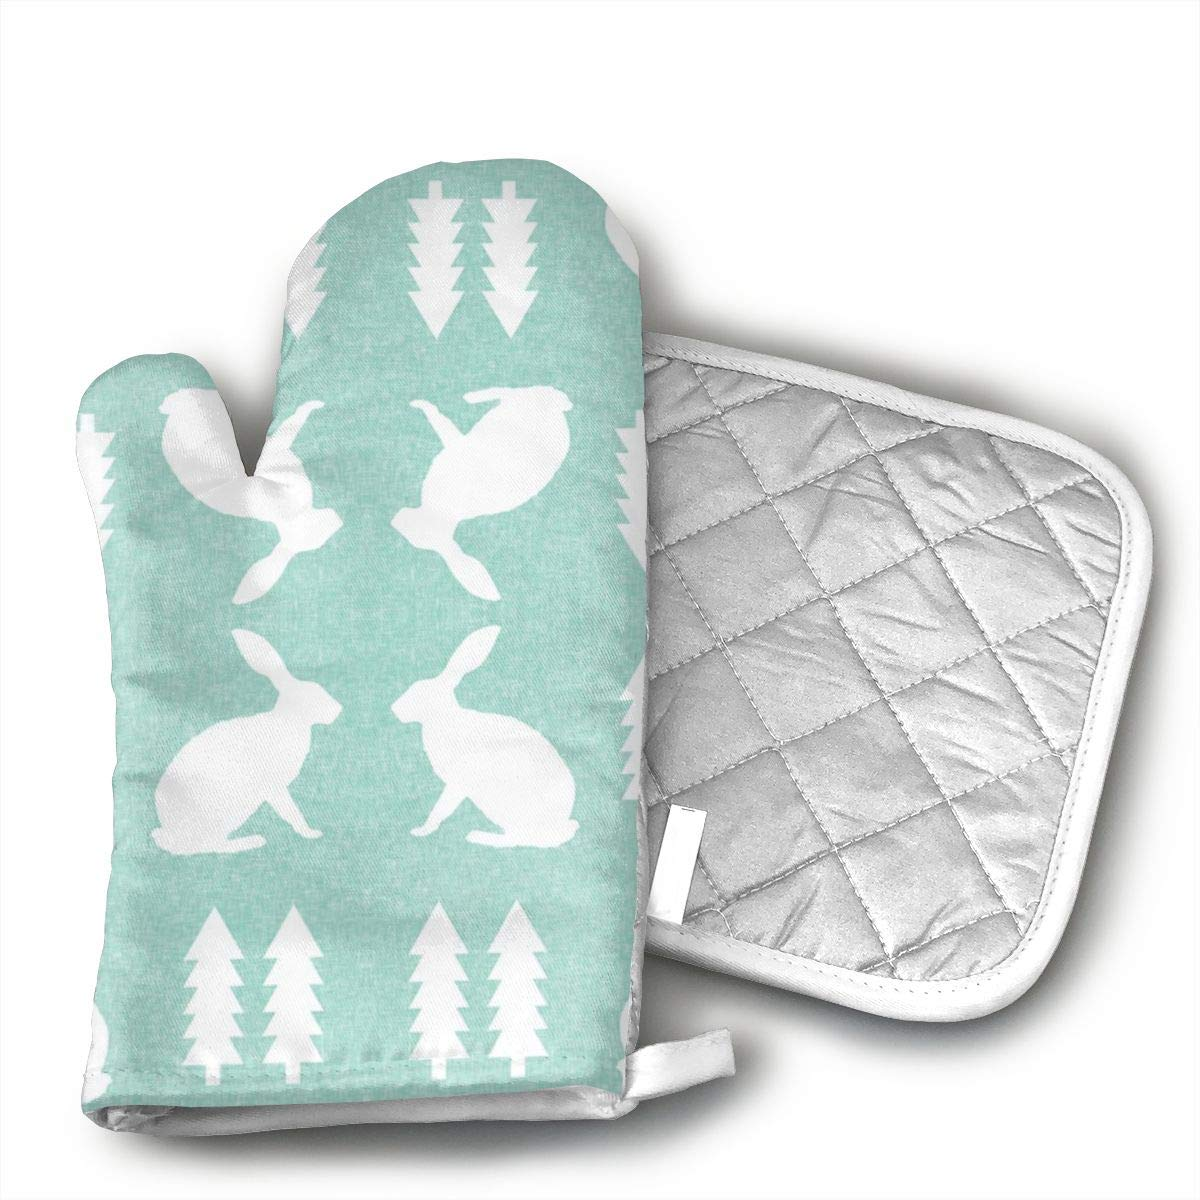 Wiqo9 Rabbit Mint Linen Oven Mitts and Pot Holders Kitchen Mitten Cooking Gloves,Cooking, Baking, BBQ.